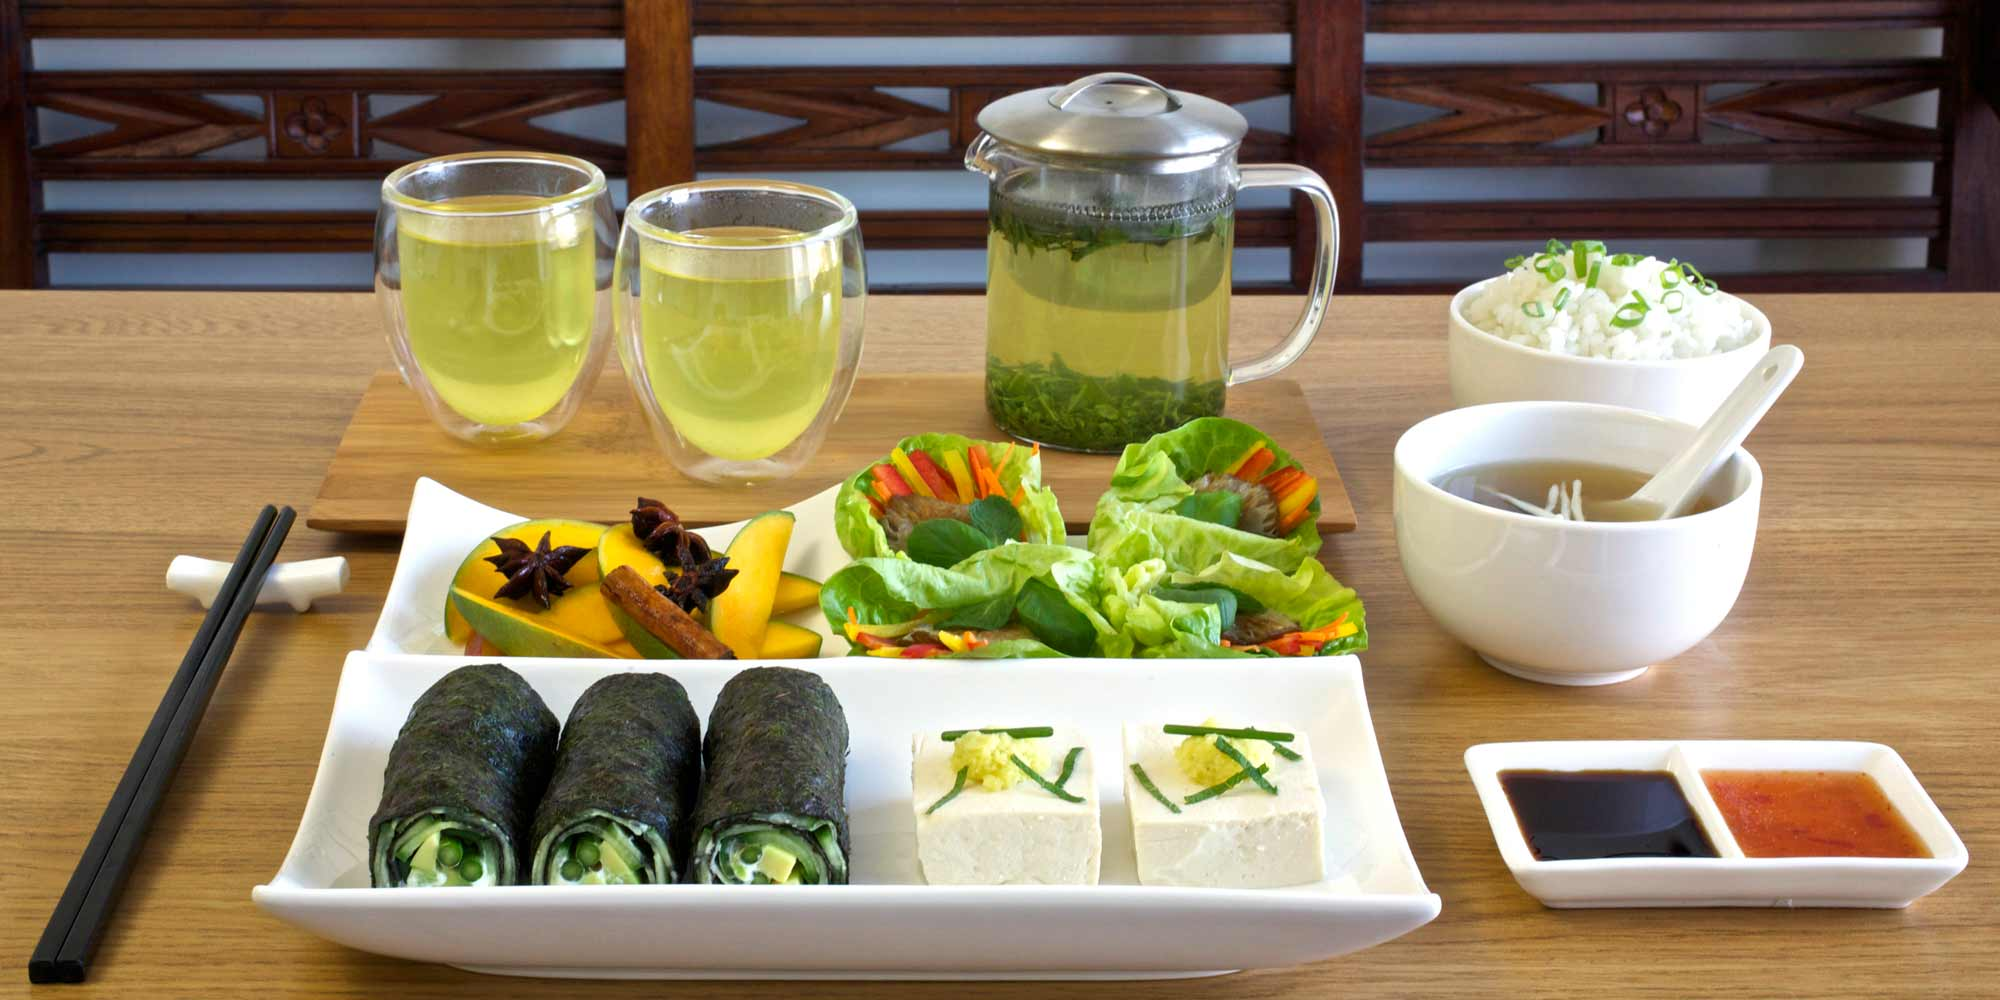 Spread of Japanese inspired canapes with sencha green tea